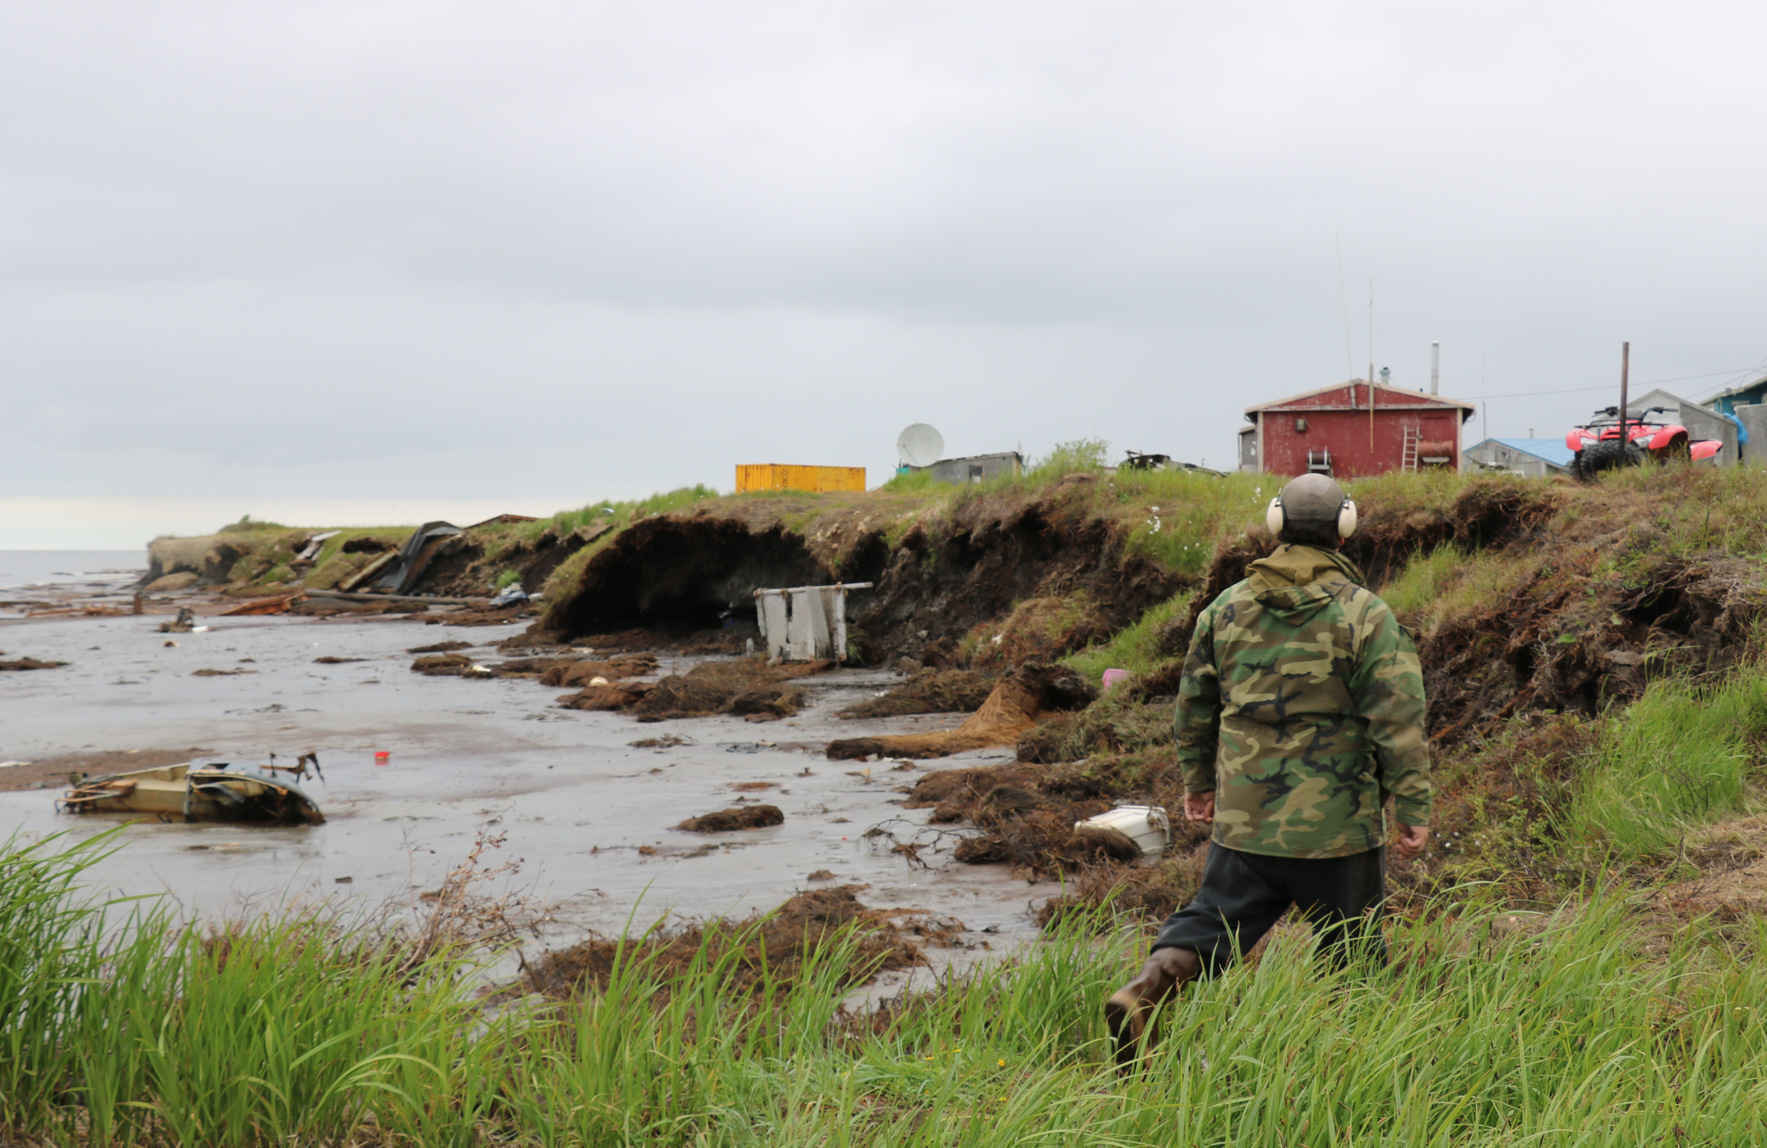 As the banks of the Ninglick River in Southwest Alaska further encroach on the village of Newtok, the need to relocate becomes more urgent. Regional support is crucial for fundraising and momentum on Newtok's relocation. image